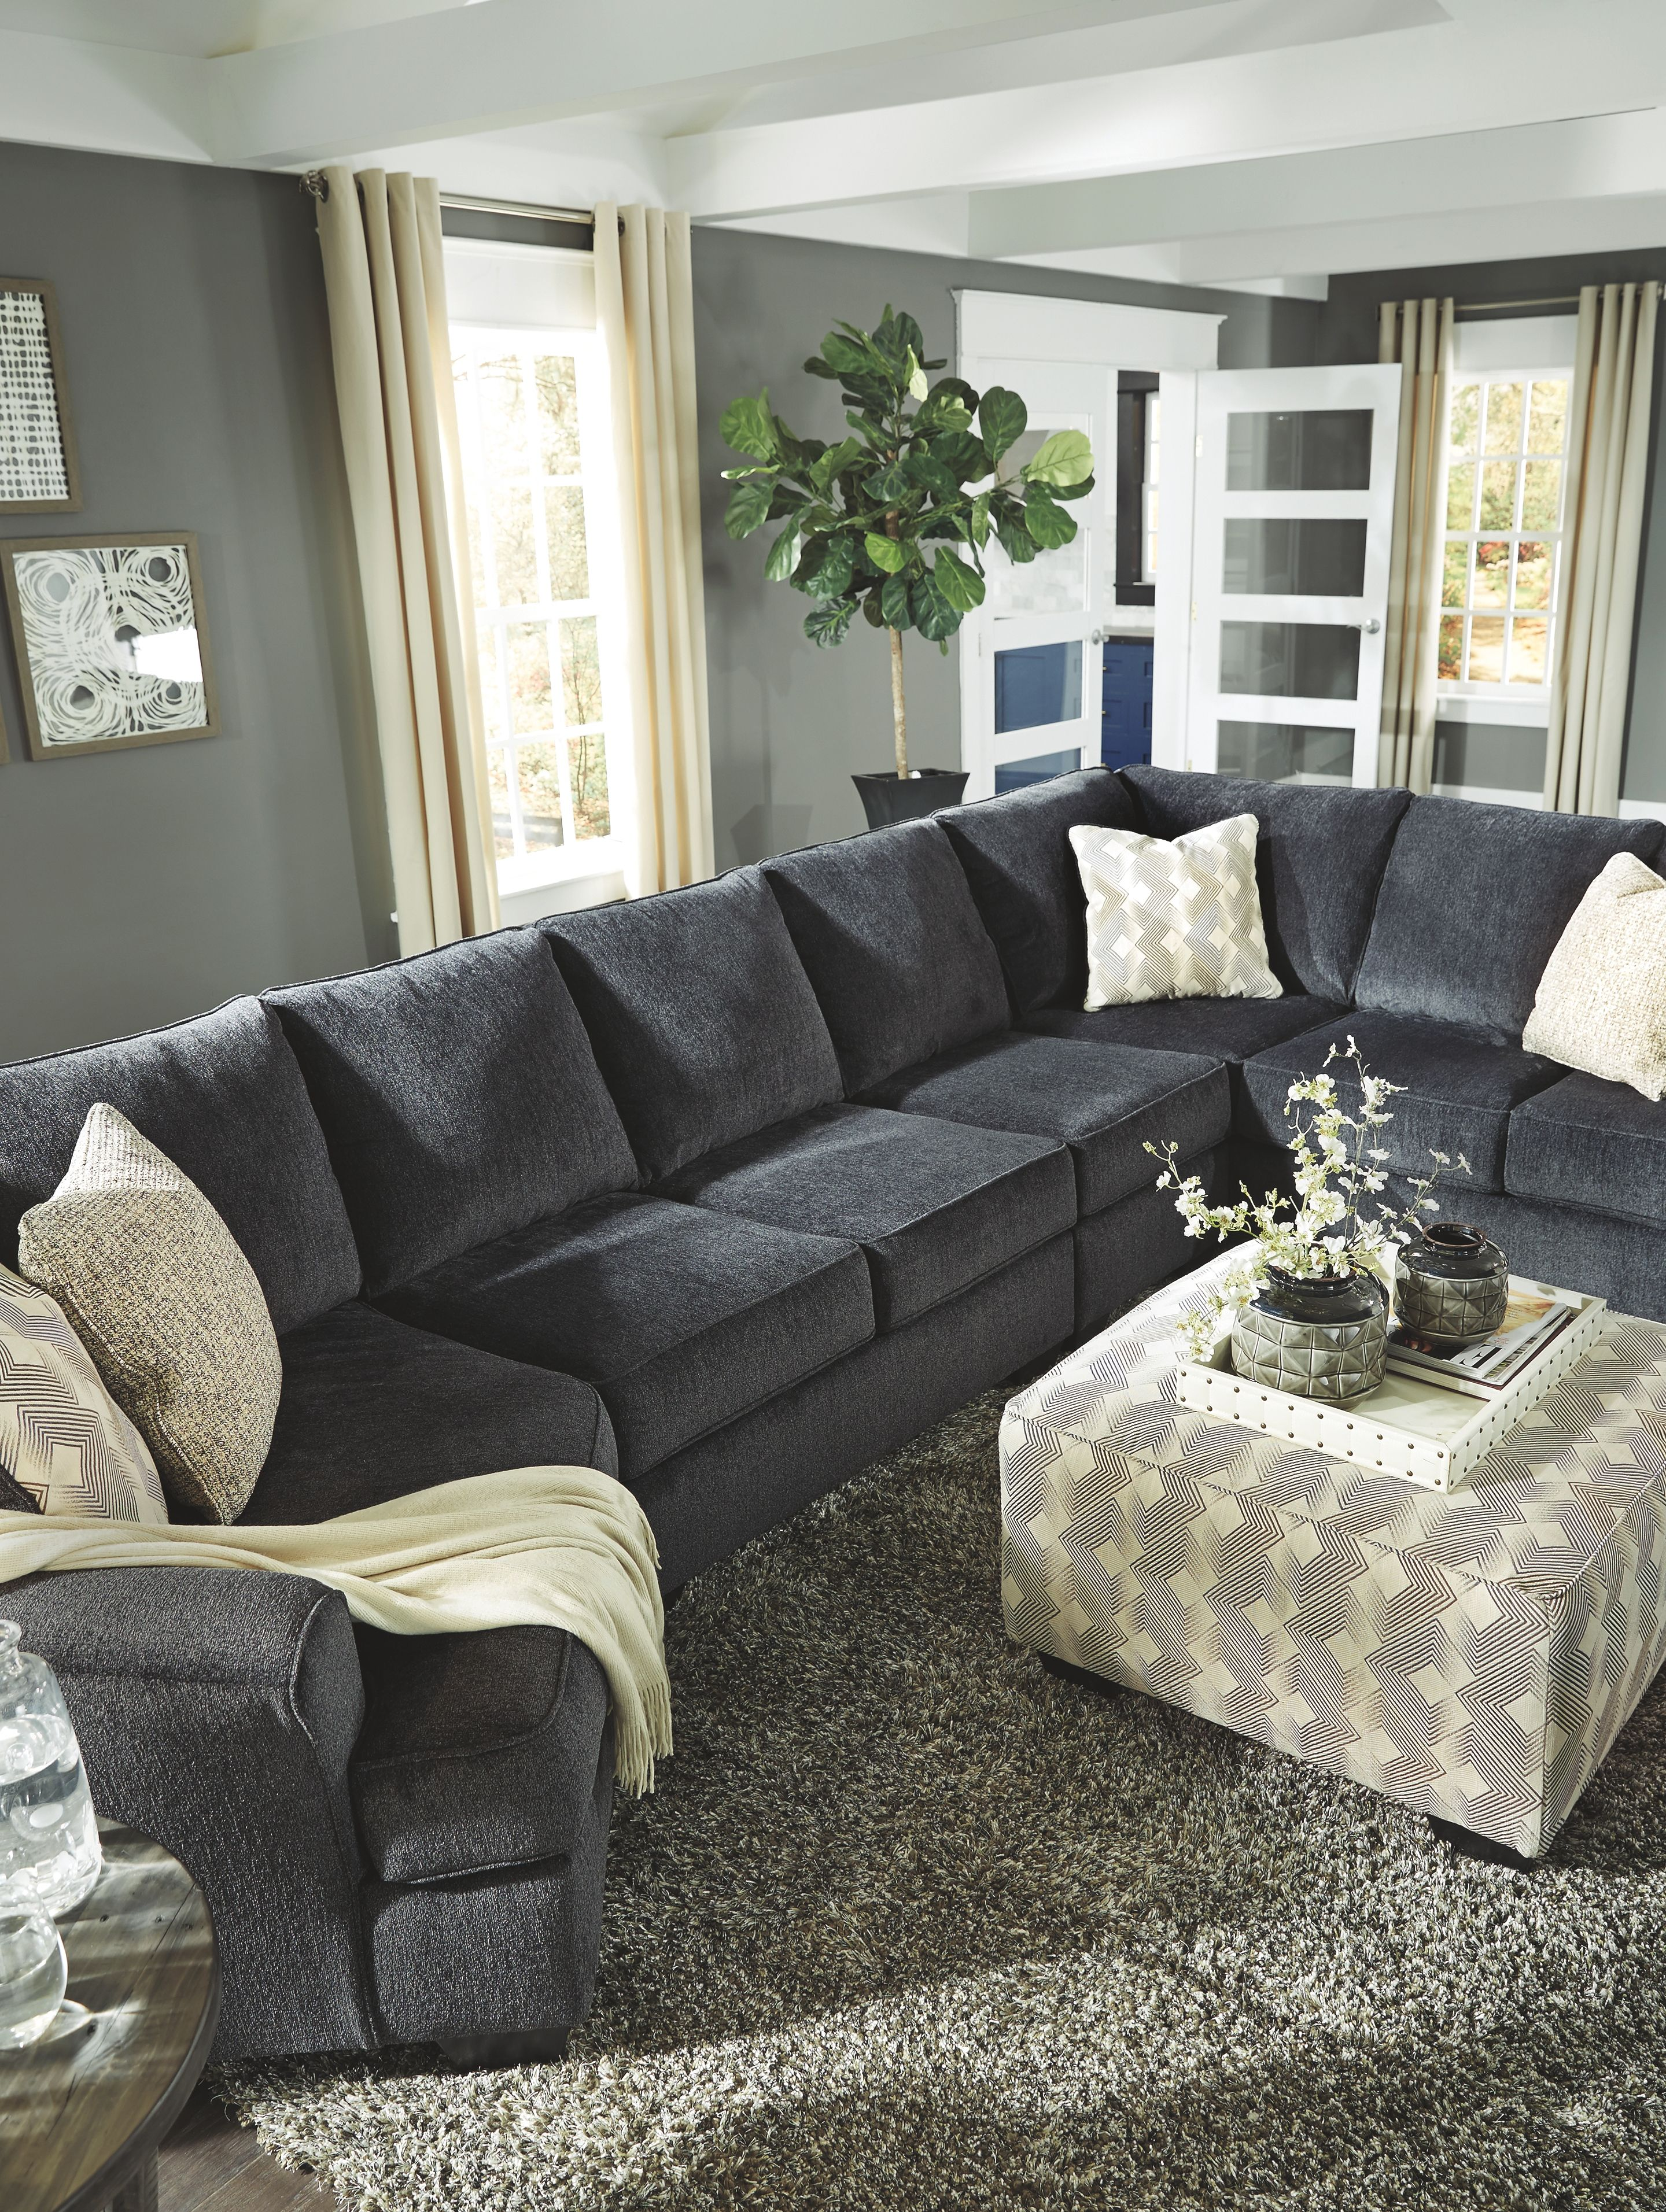 Pin By Christina Royer On New Living Room In 2020 With Images